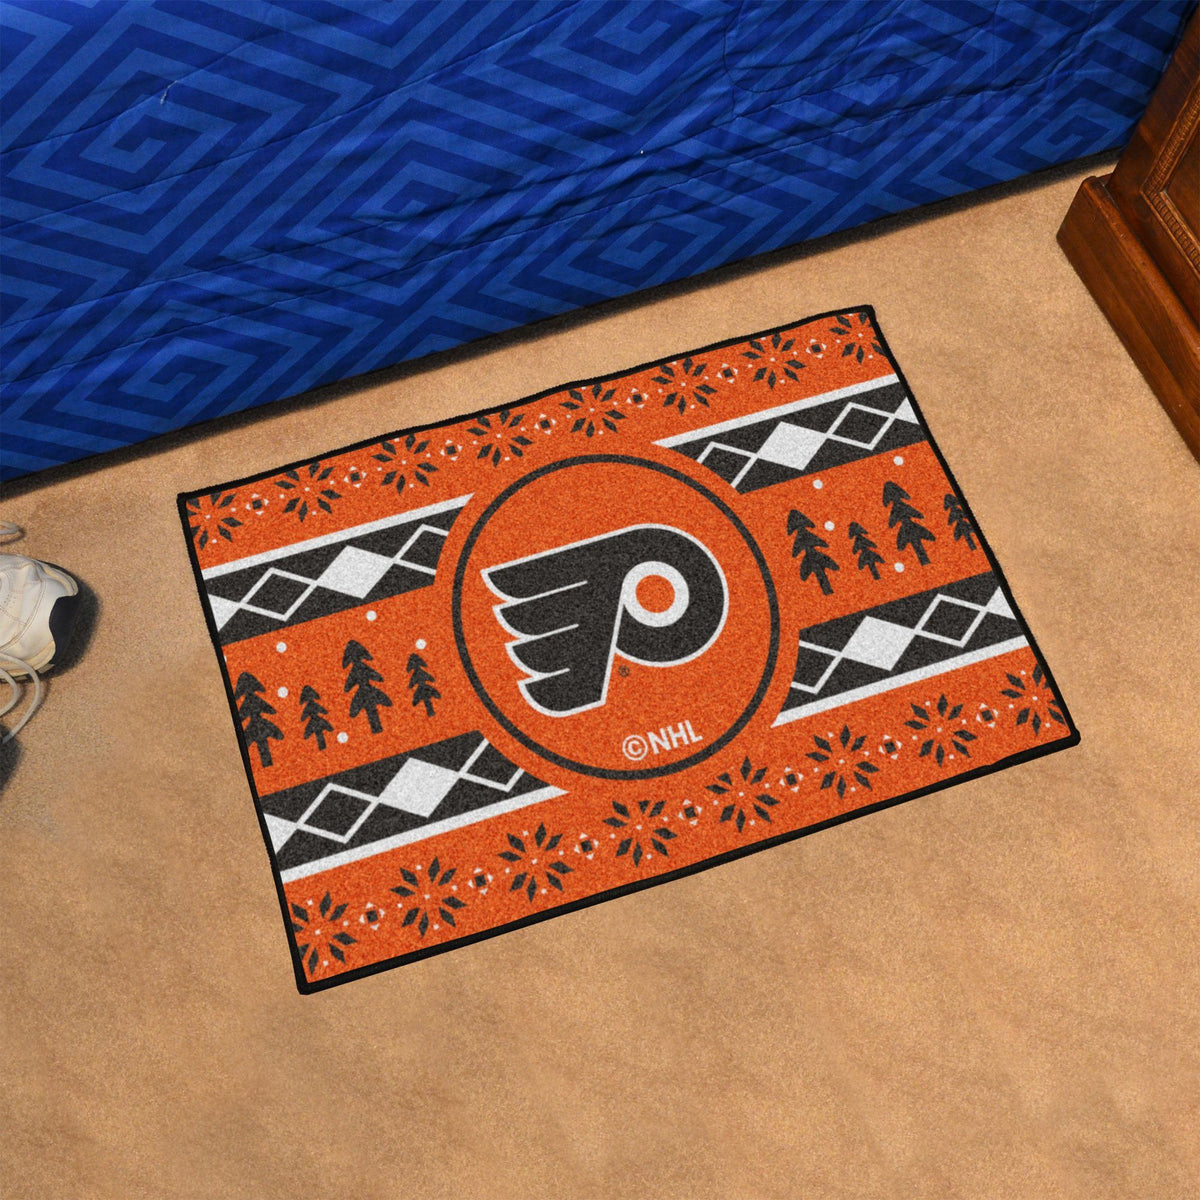 NHL - Holiday Sweater Starter Mat NHL Mats, Rectangular Mats, Holiday Sweater Starter Mat, NHL, Home Fan Mats Philadelphia Flyers